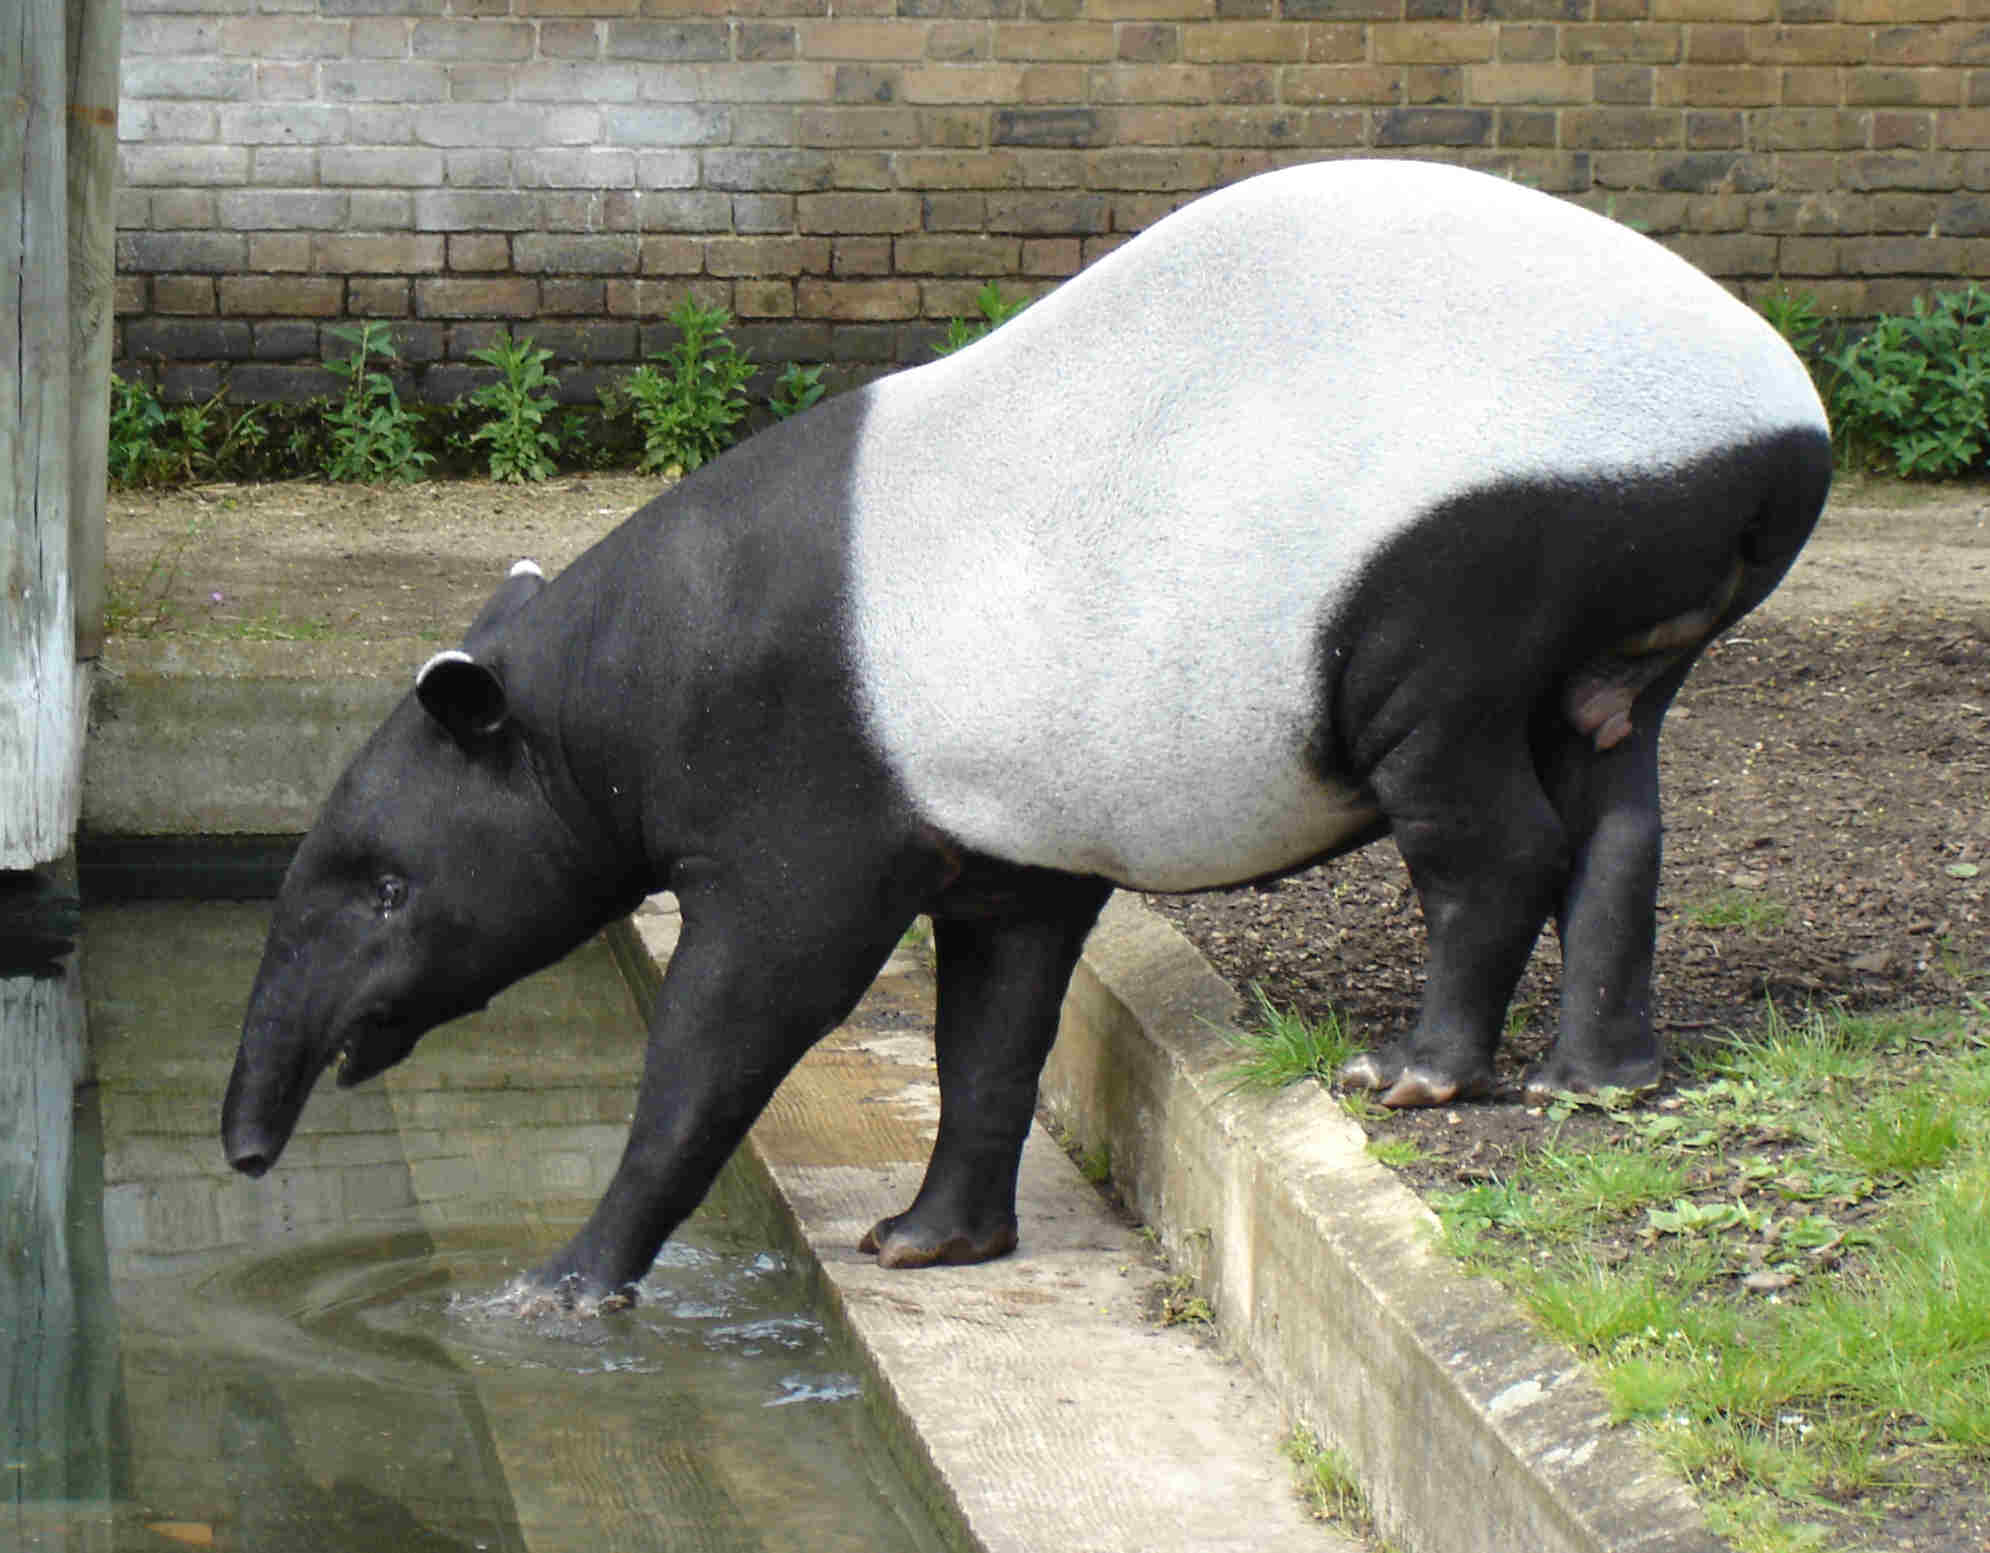 http://upload.wikimedia.org/wikipedia/commons/b/bd/Malayan_Tapir.JPG